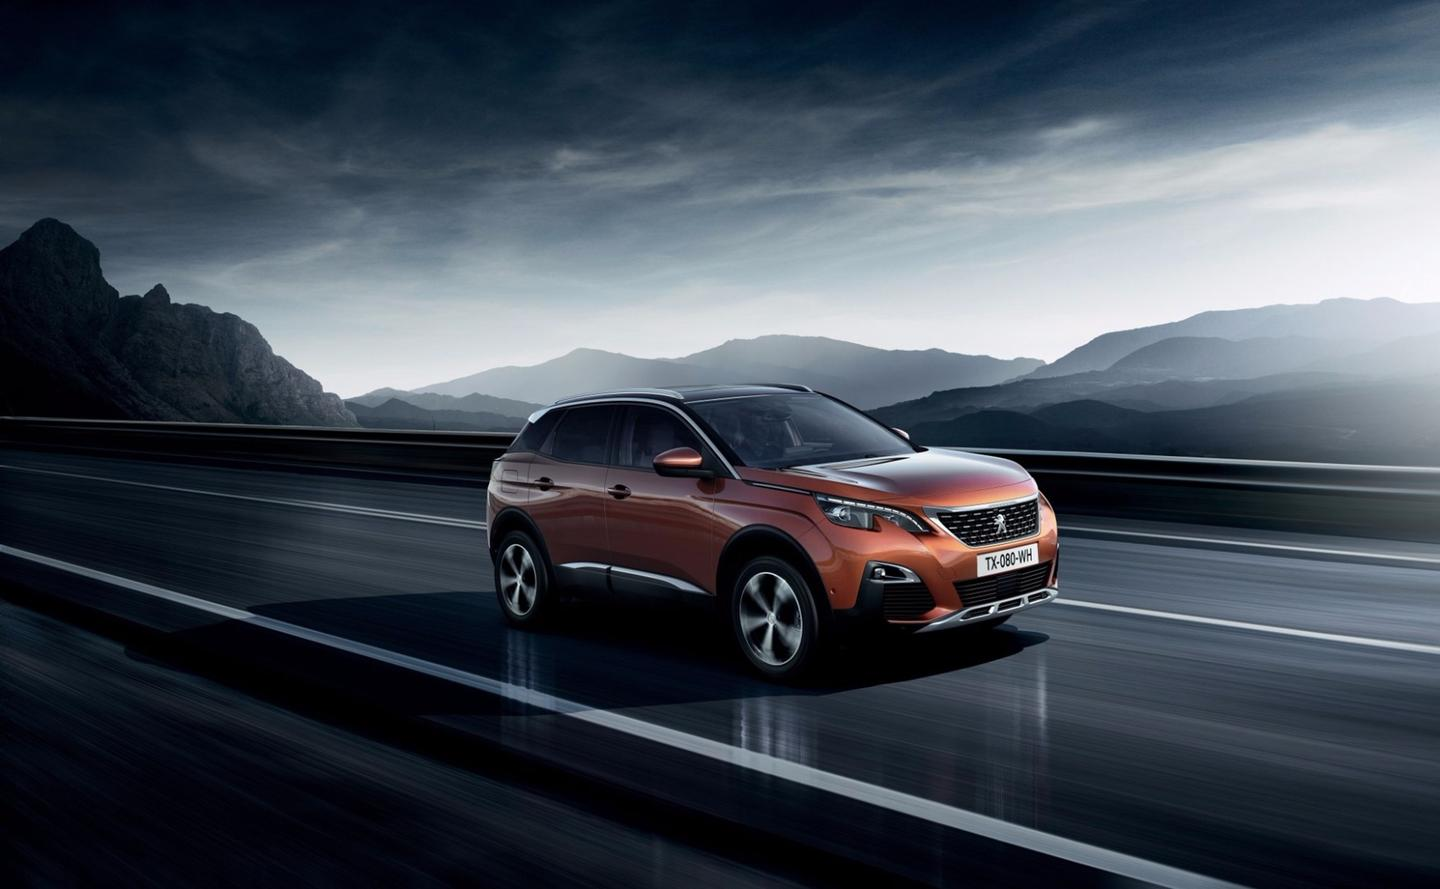 The new Peugeot 3008 is said to have improved efficiency and performance